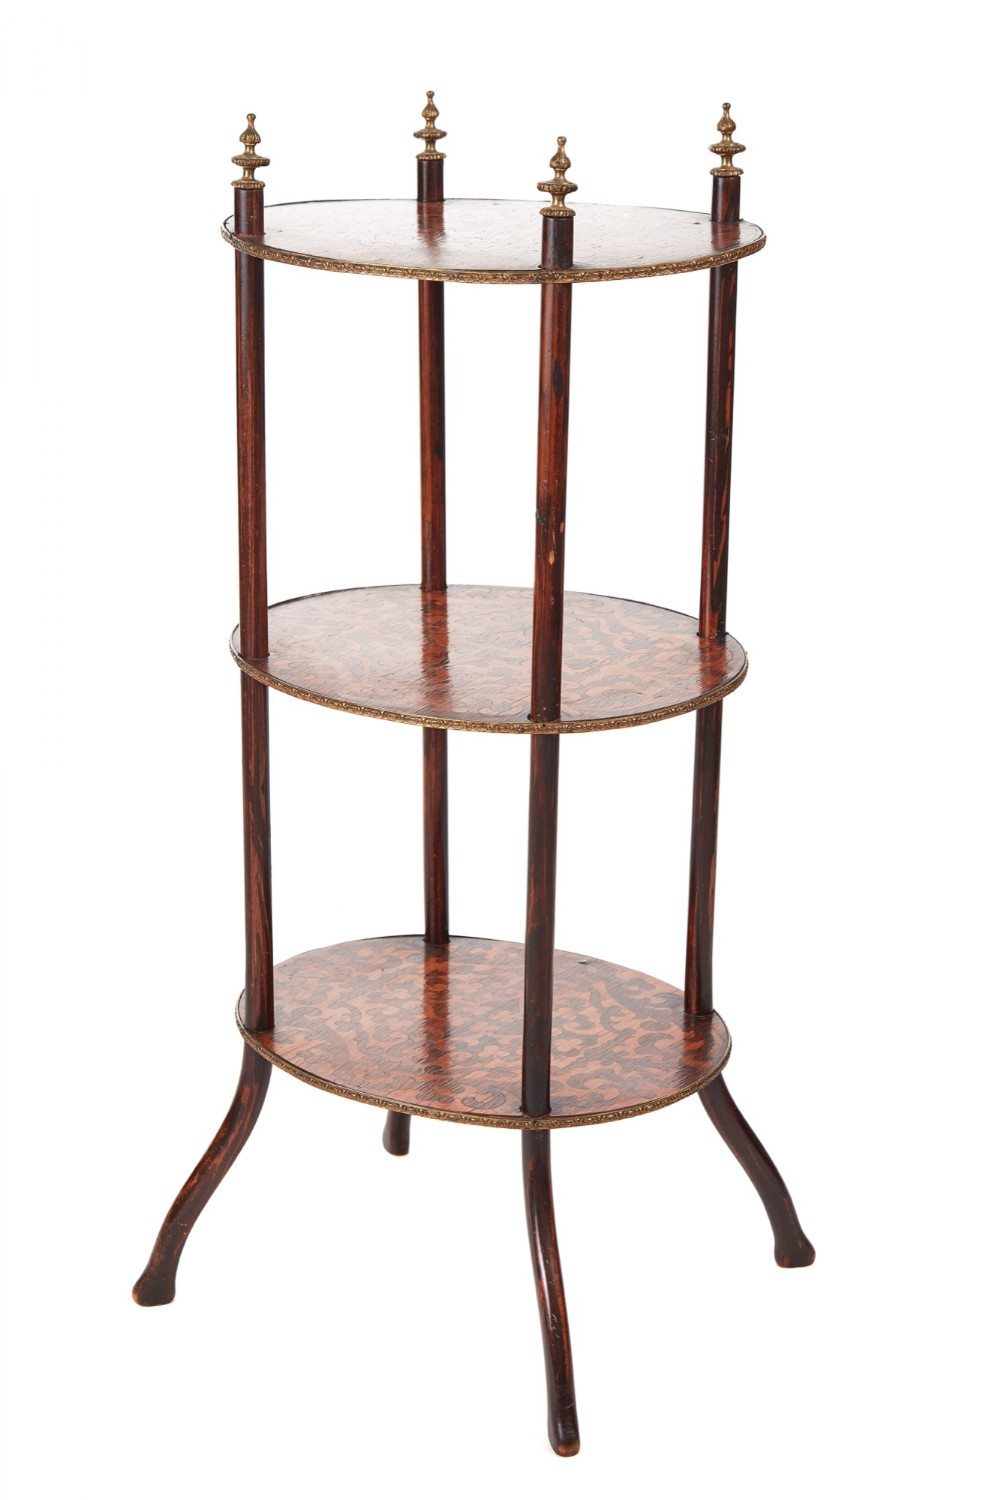 victorian three tier oval inlaid stand c1860